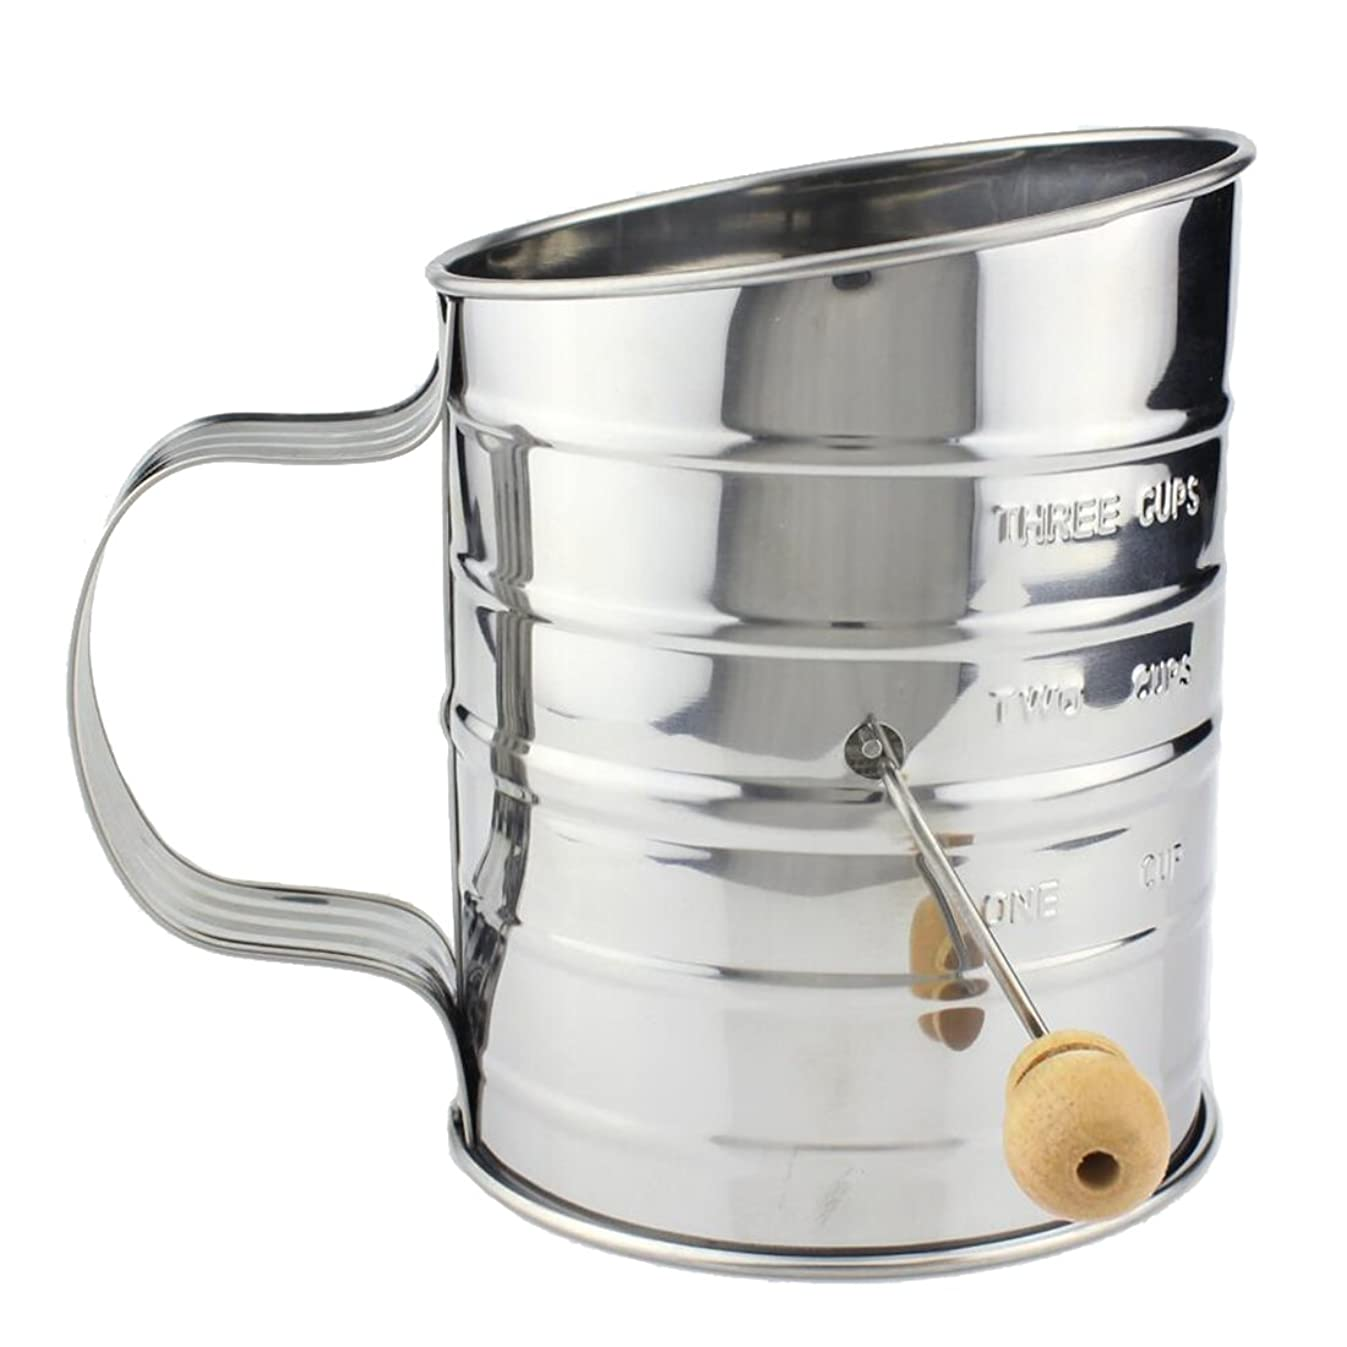 Tosnail 3-Cup Stainless Steel Hand Crank Flour Sifter